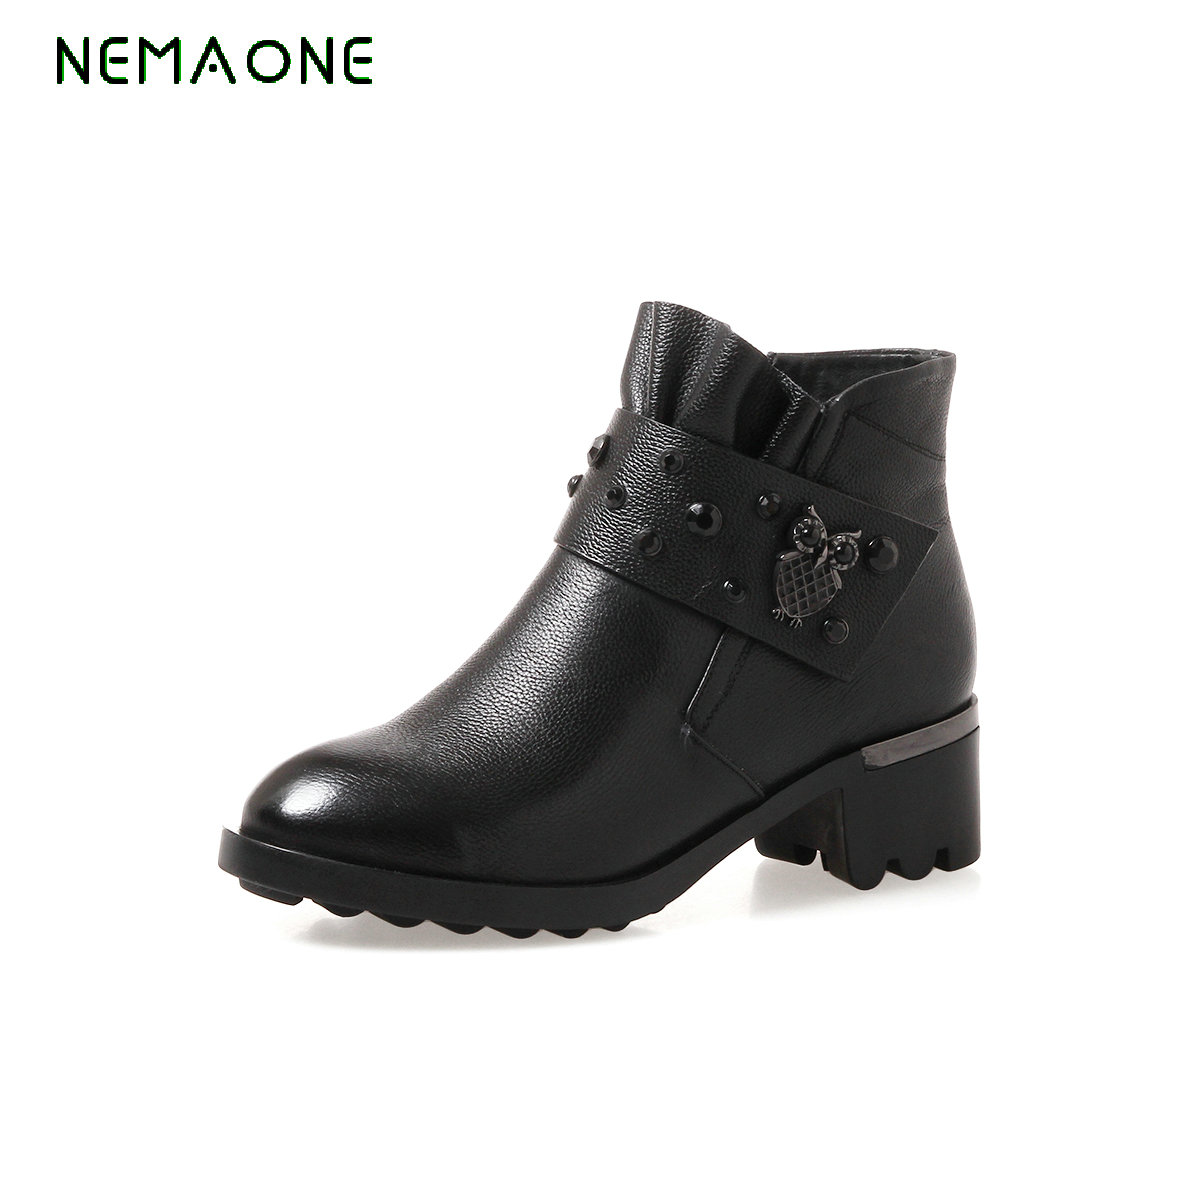 NEMAONE Fashion Big Size Ankle Boots Square Heels Platform Round Toe Casual Winter Daily Working Shoes Women Size 32-43 big size 34 42 high quality genuine leather leisure low heels ankle boots fashion cowhide round toe platform women boots